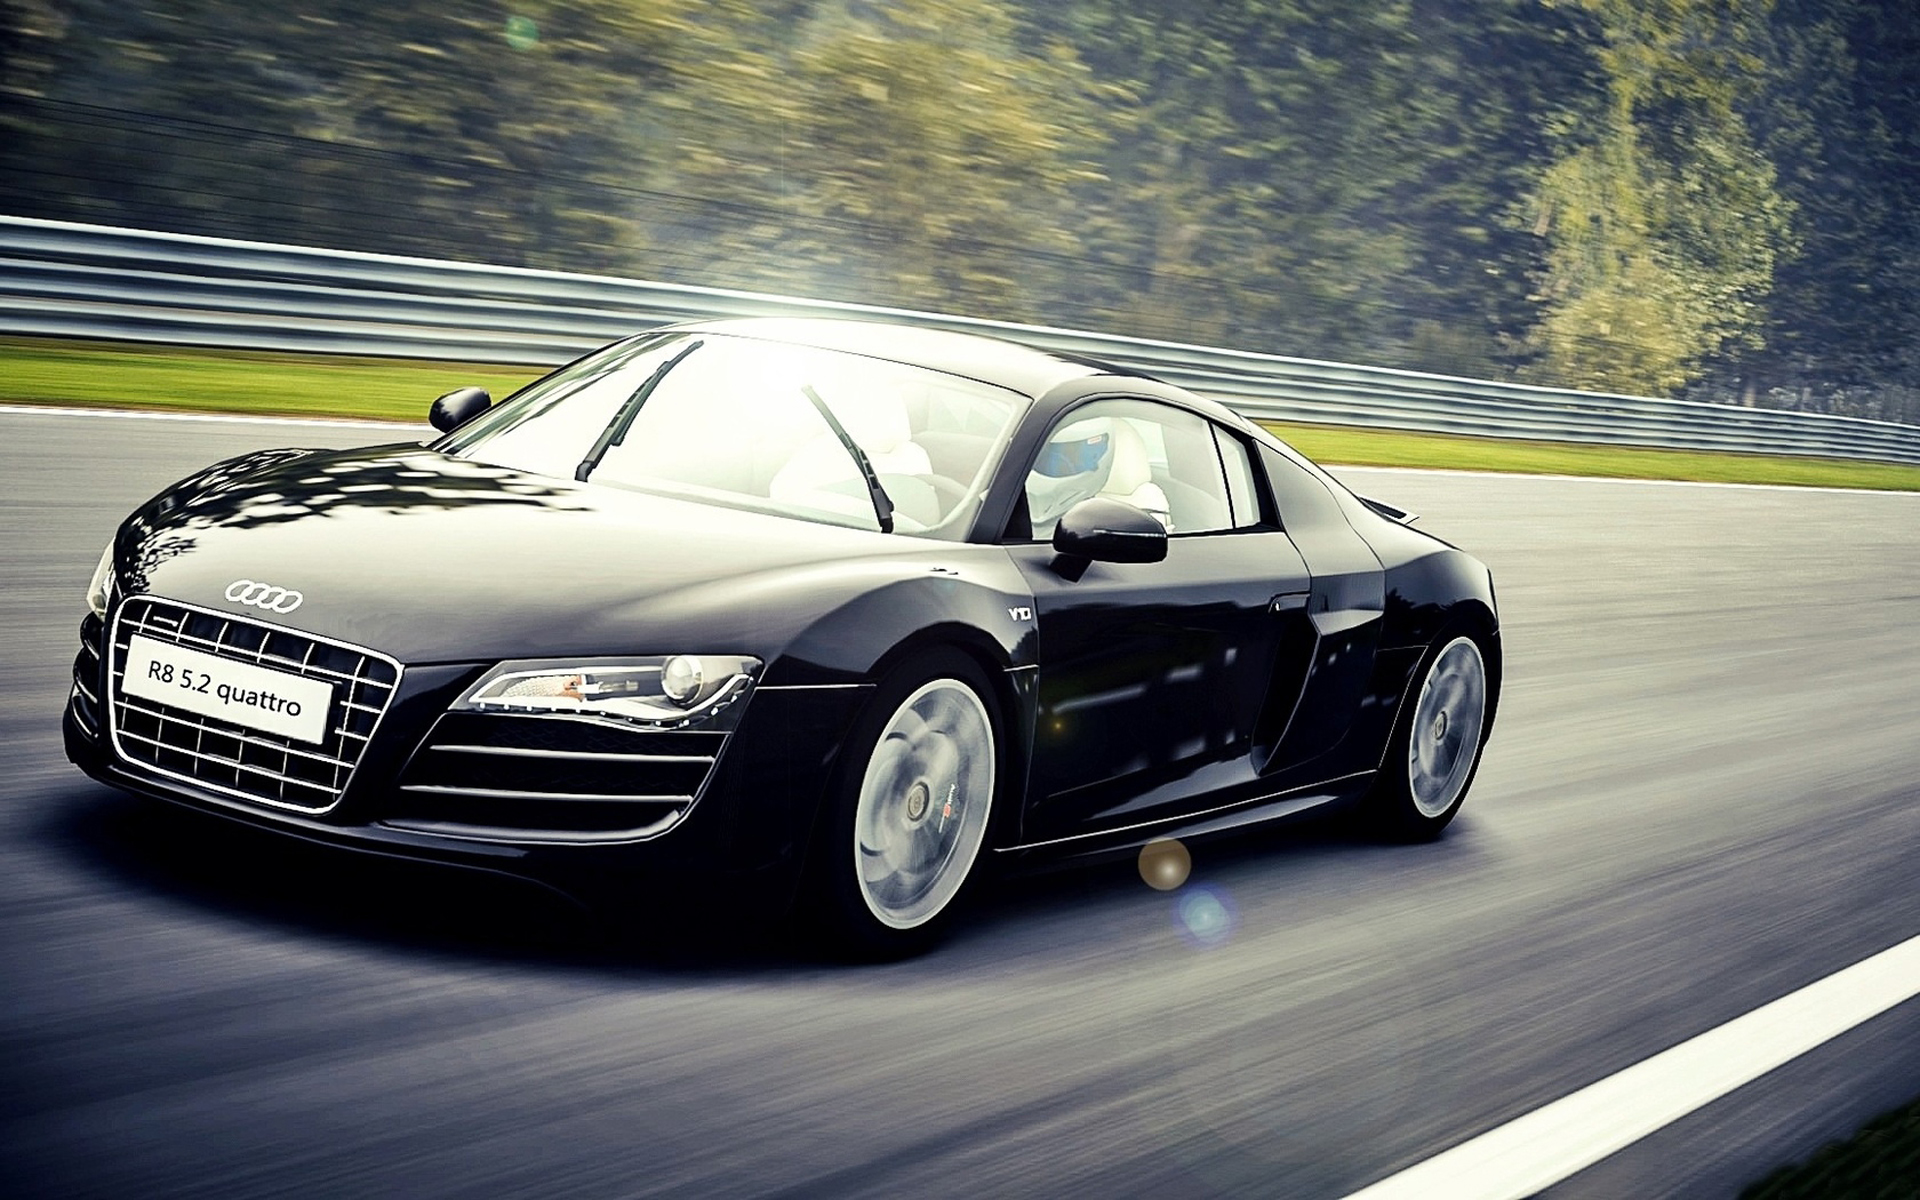 audi r8 wallpapers, pictures, images